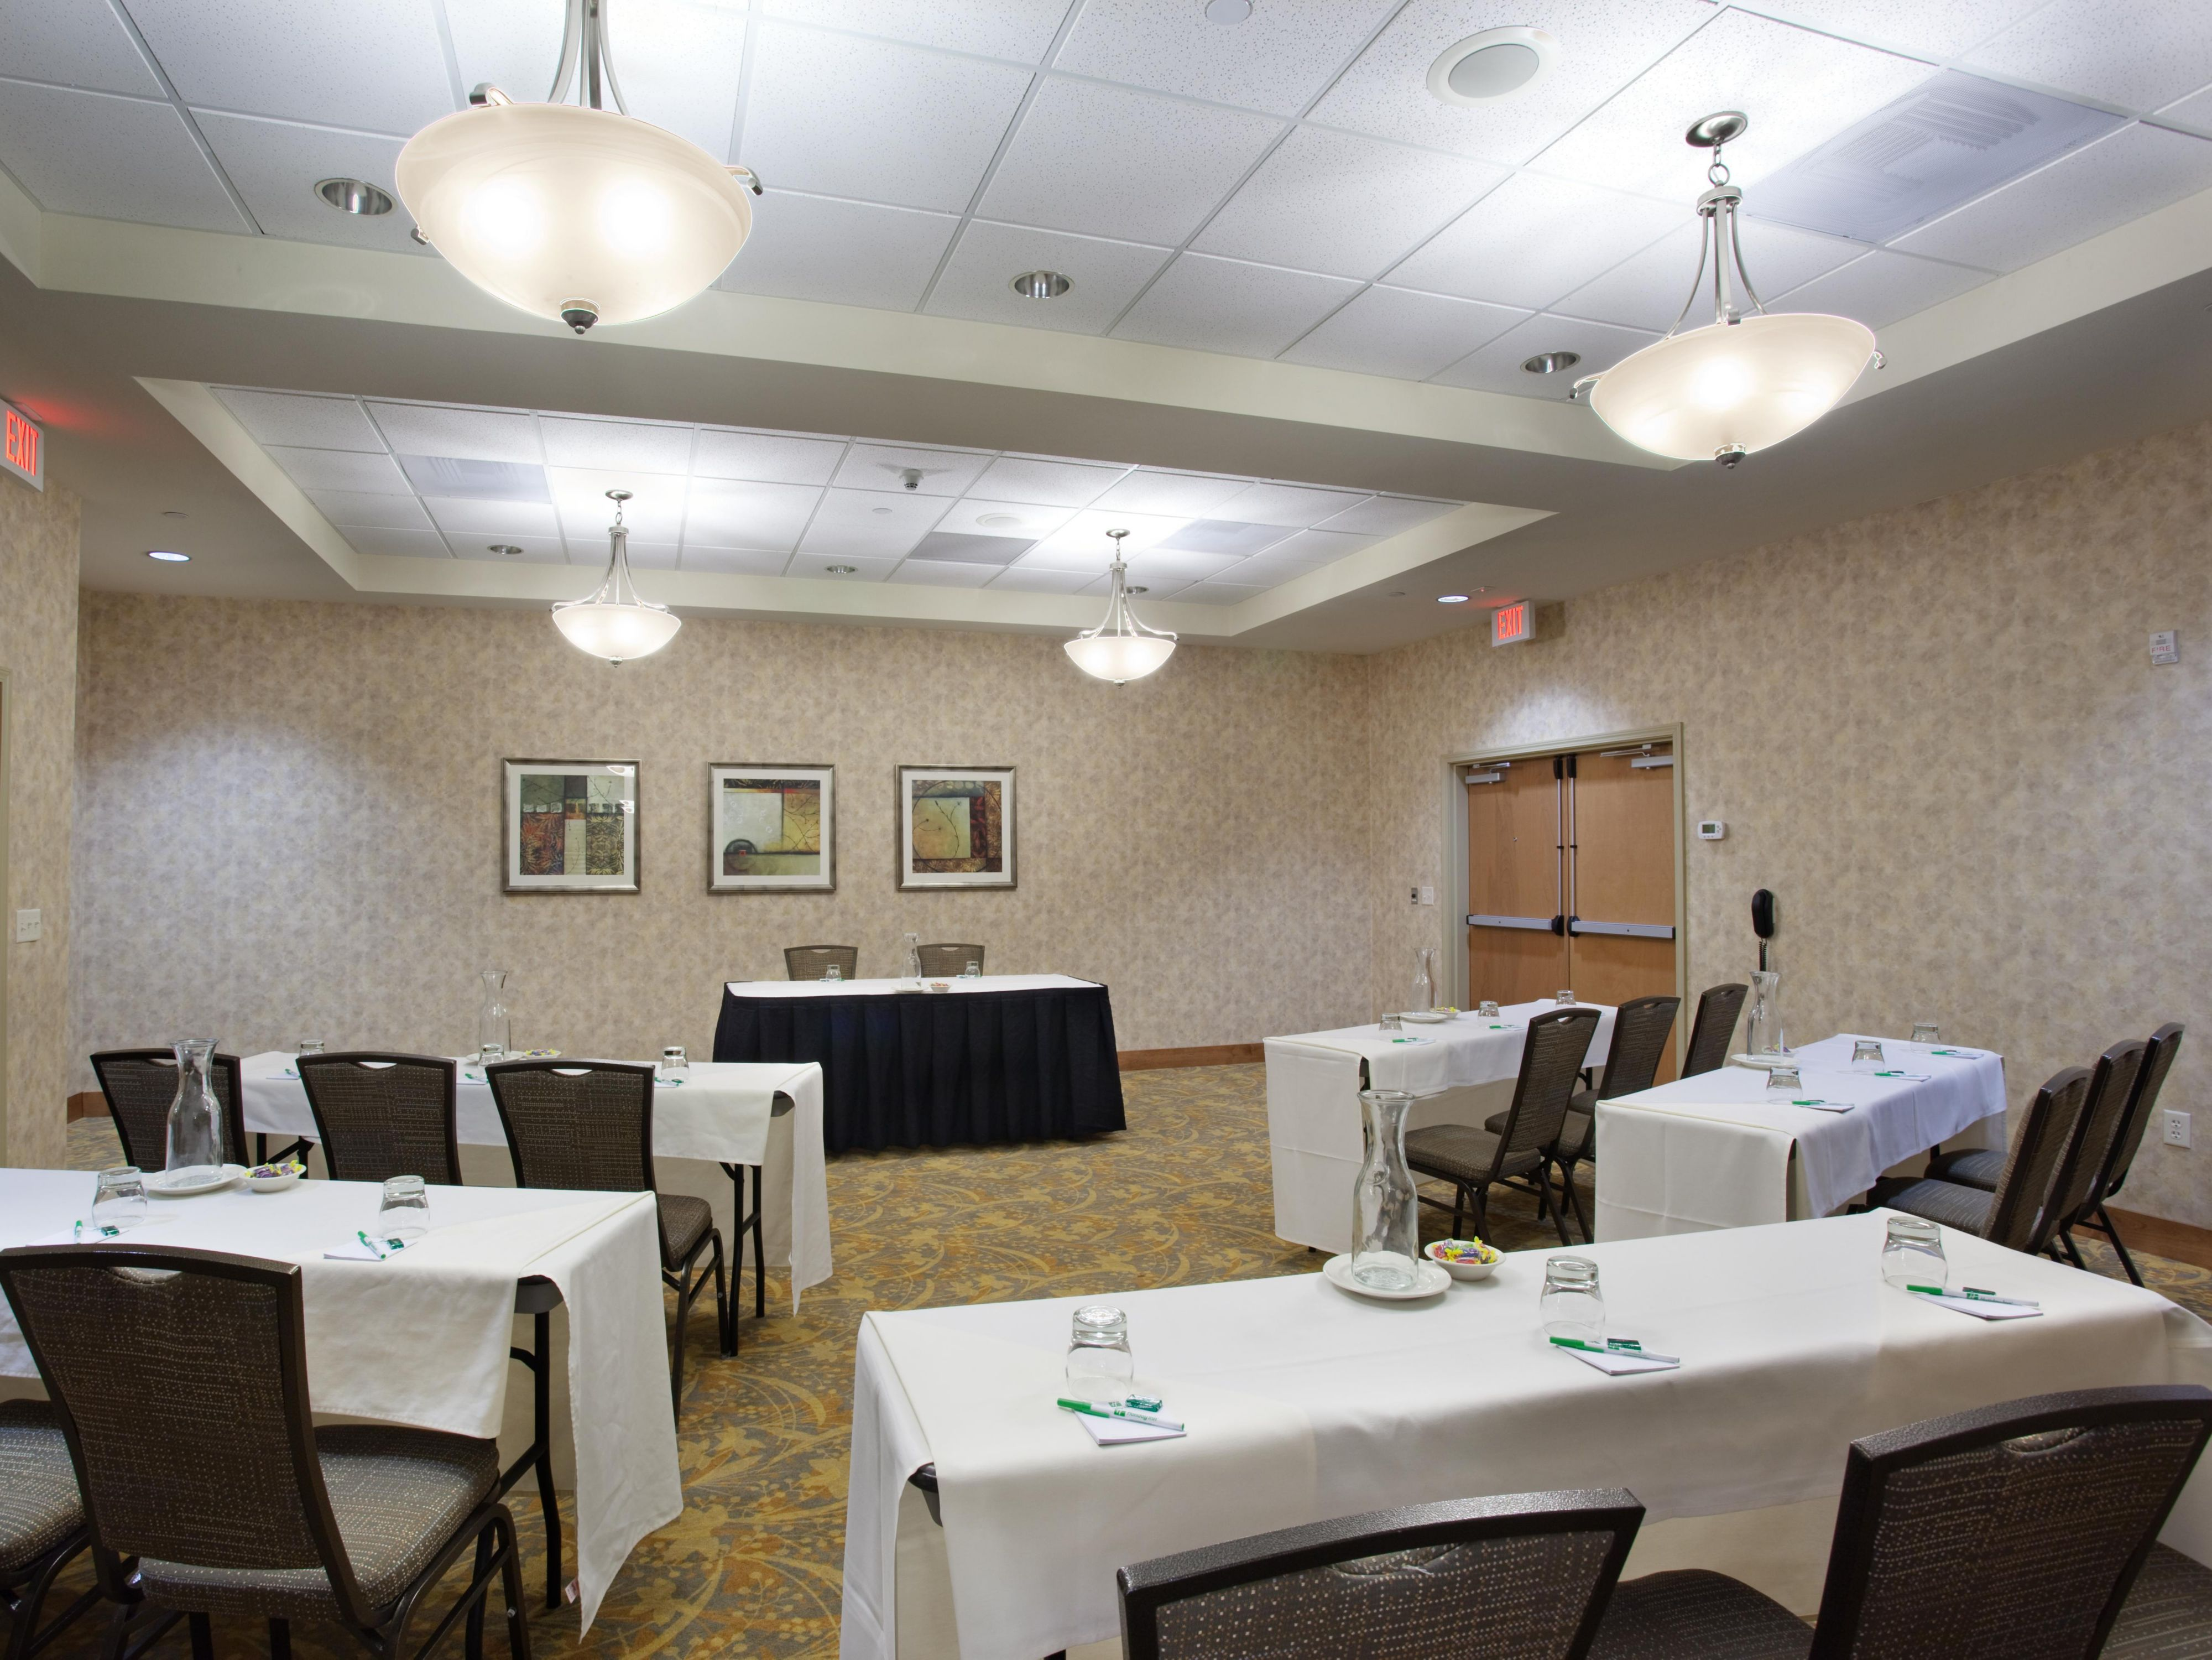 Meeting Room at the Holiday Inn in Laramie, WY